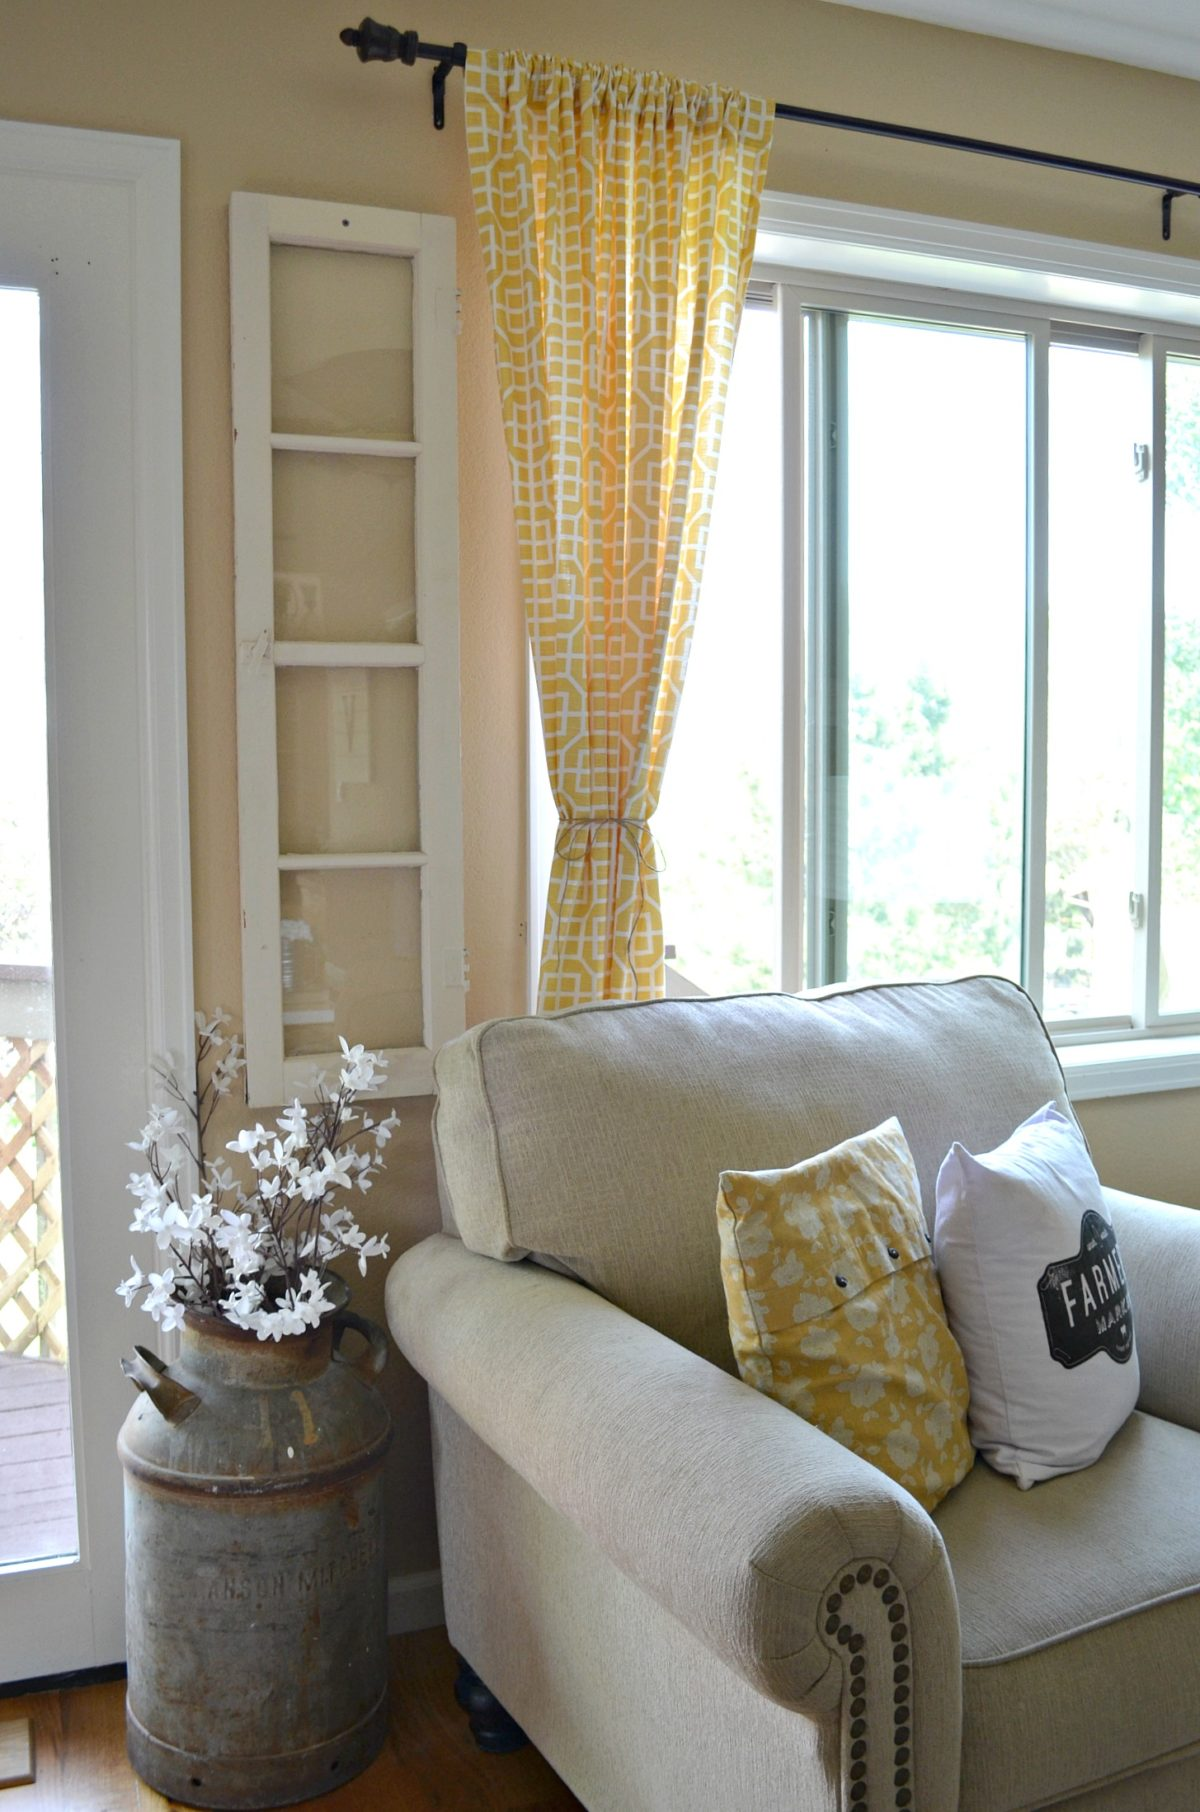 4 Reasons You Should Decorate with Old Windows - Little ... on Farmhouse Curtain Ideas For Living Room  id=28942